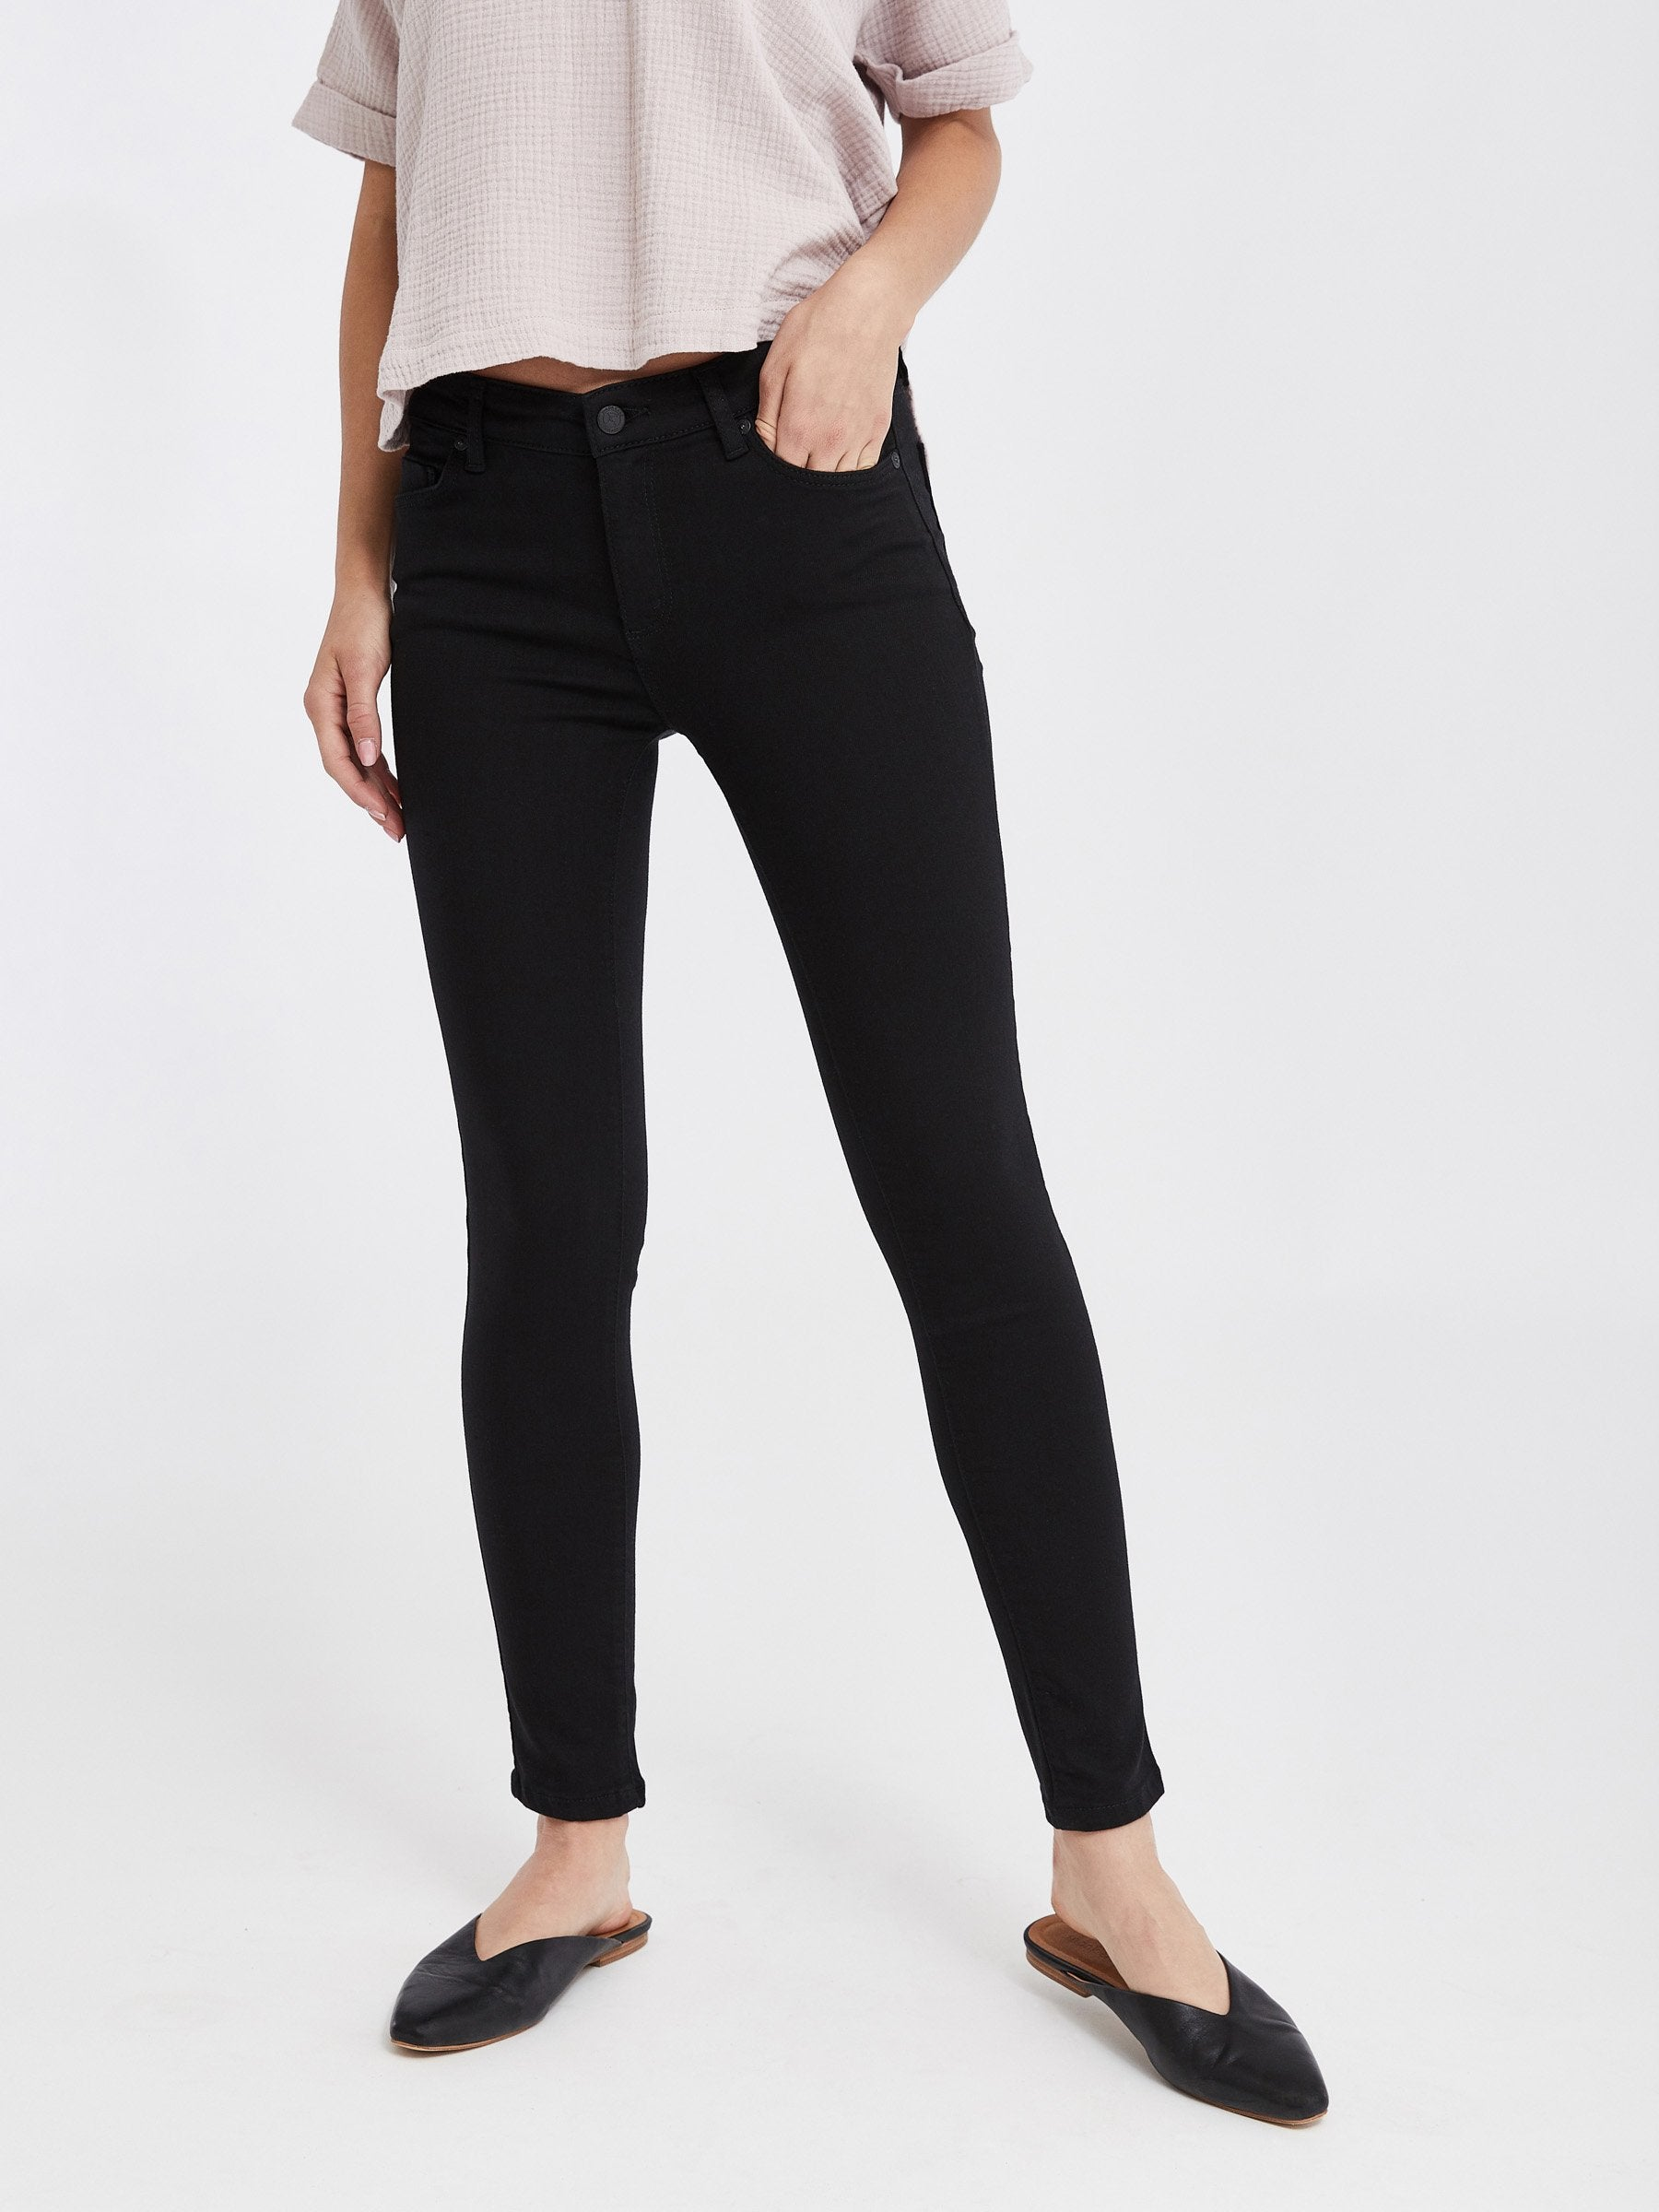 Madrid Midrise Skinny - Black